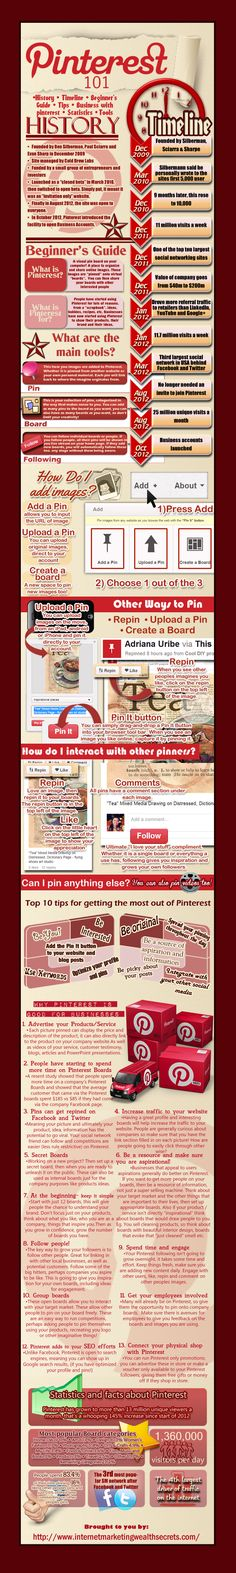 An information packed infographic featuring Interesting background/history of #Pinterest + tips for success #infographic #socialmedia